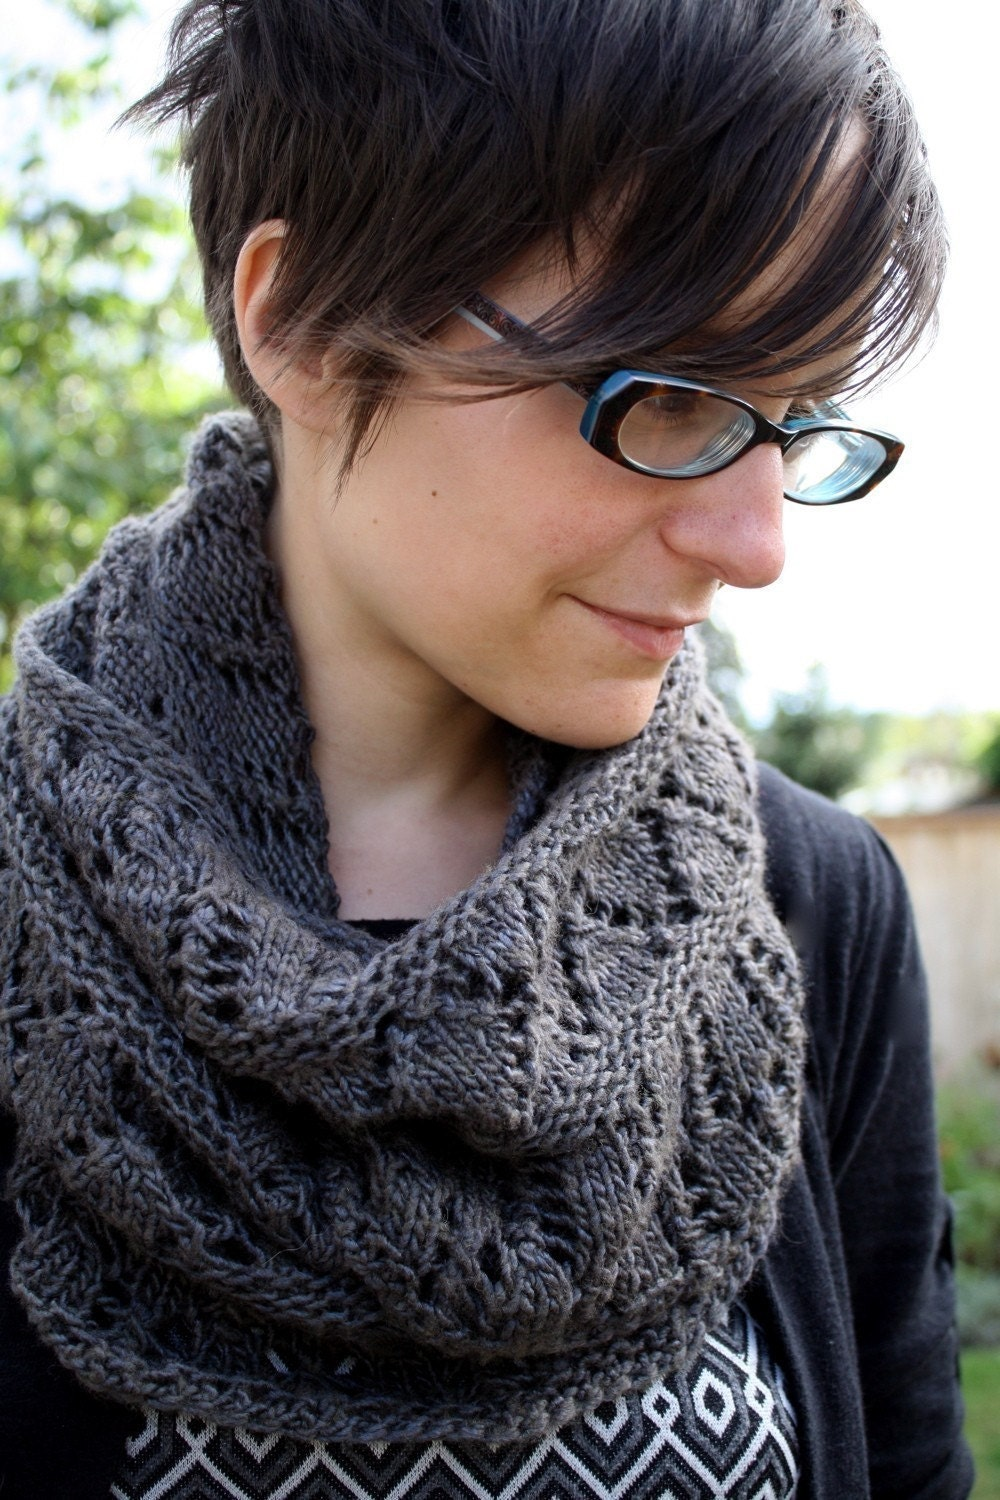 Knitting Pattern For Lace Snood : Cowl KNITTING PATTERN Lace Circle Scarf Cowl Snood